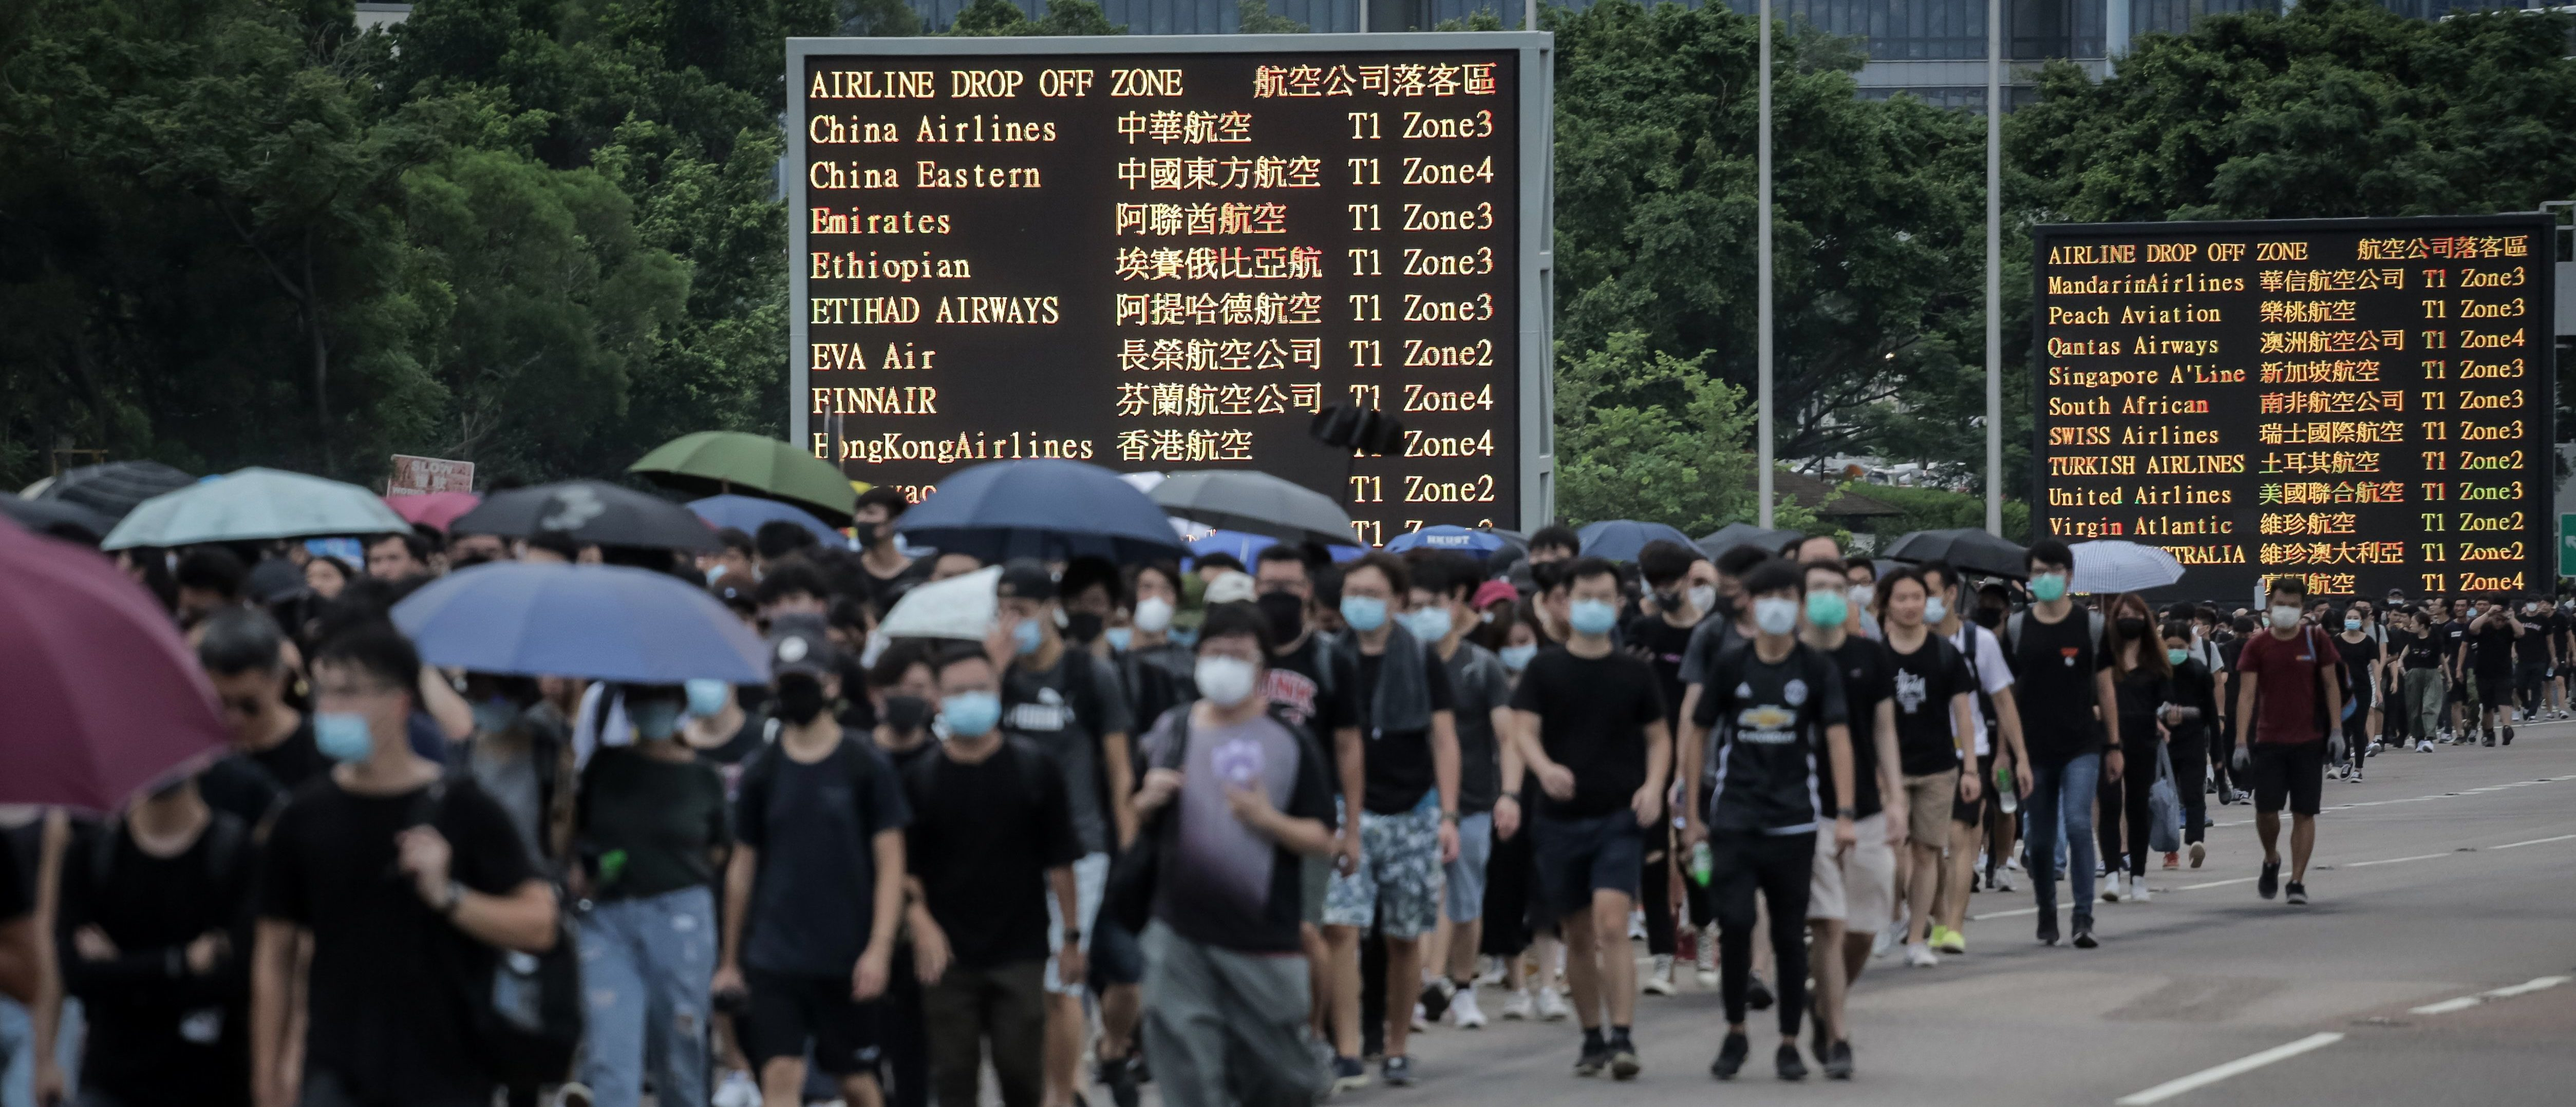 Why Russia Will Support China's Crackdown In Hong Kong